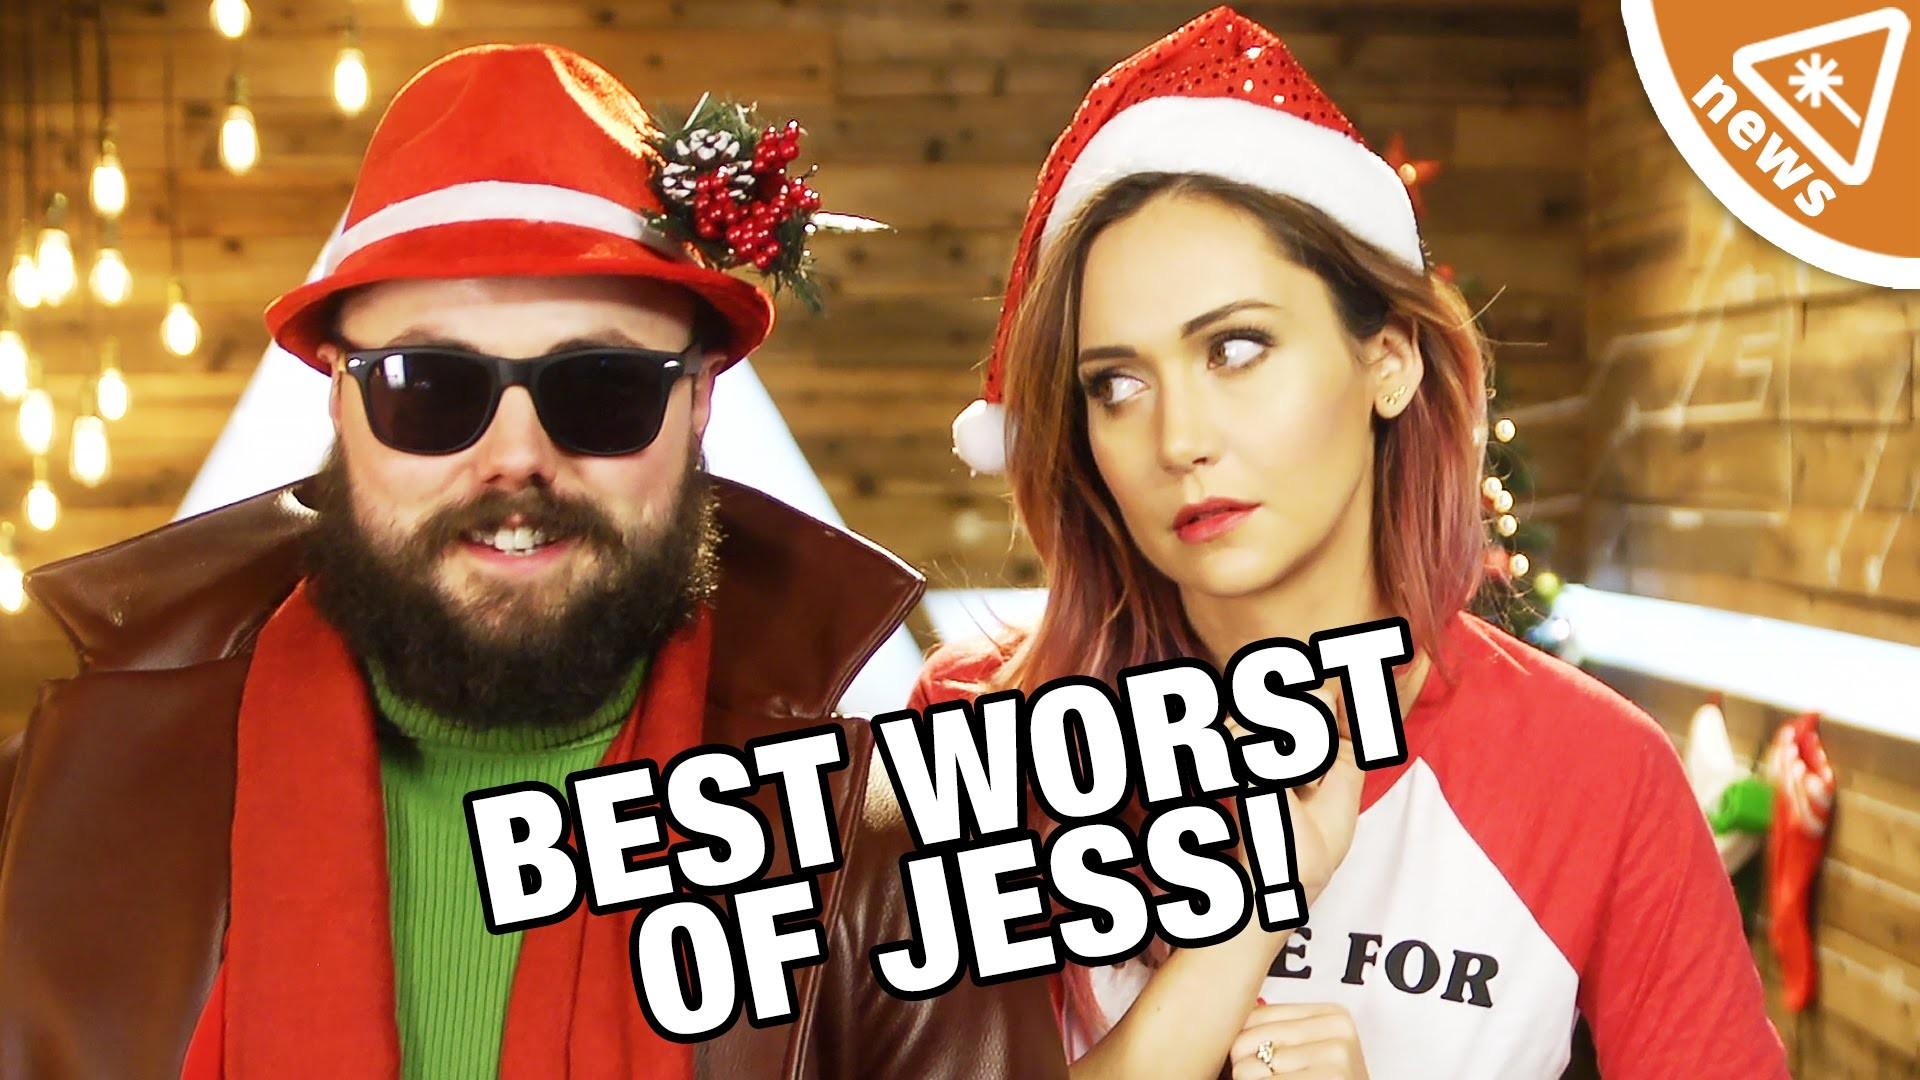 Res: 1920x1080, The Best and Worst of Jessica Chobot from 2015! (Nerdist News w/ Jessica  Chobot) - YouTube